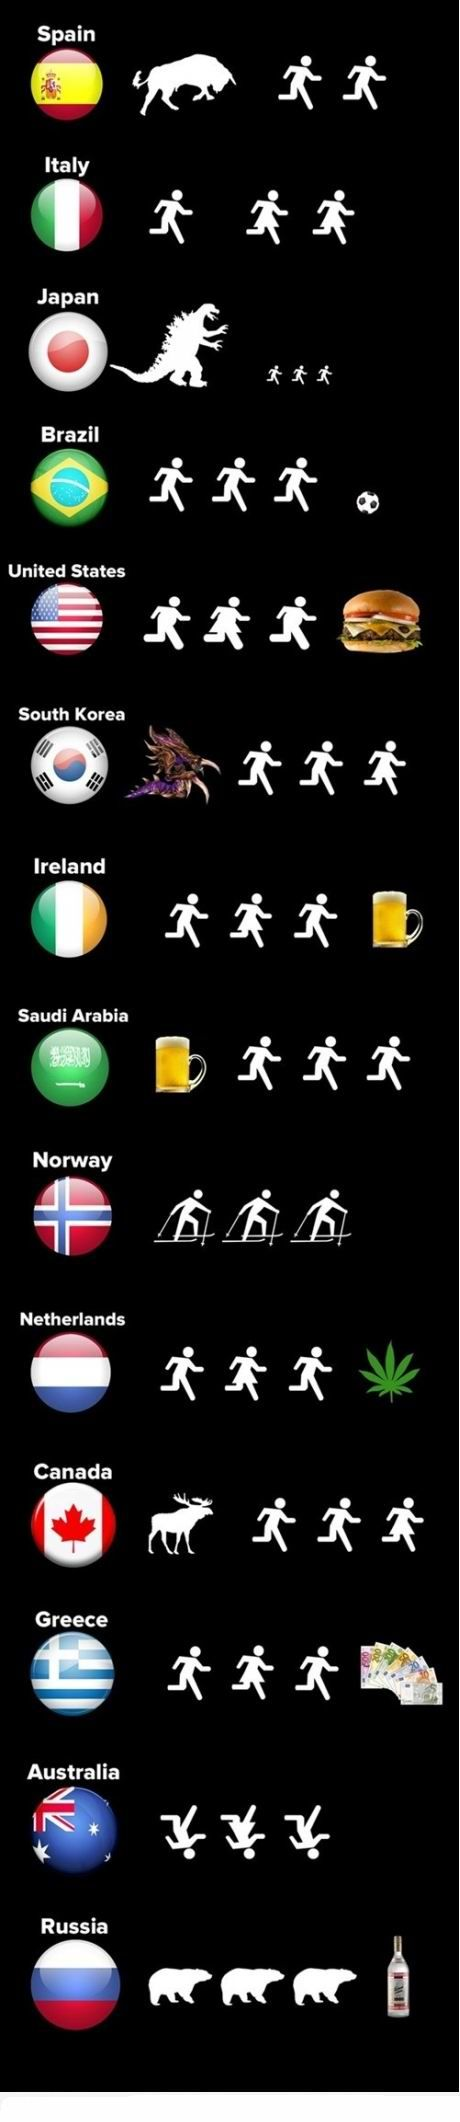 Why people running in different countries? #infographic #Humor (pinned by @Larry Engel Ollarve)